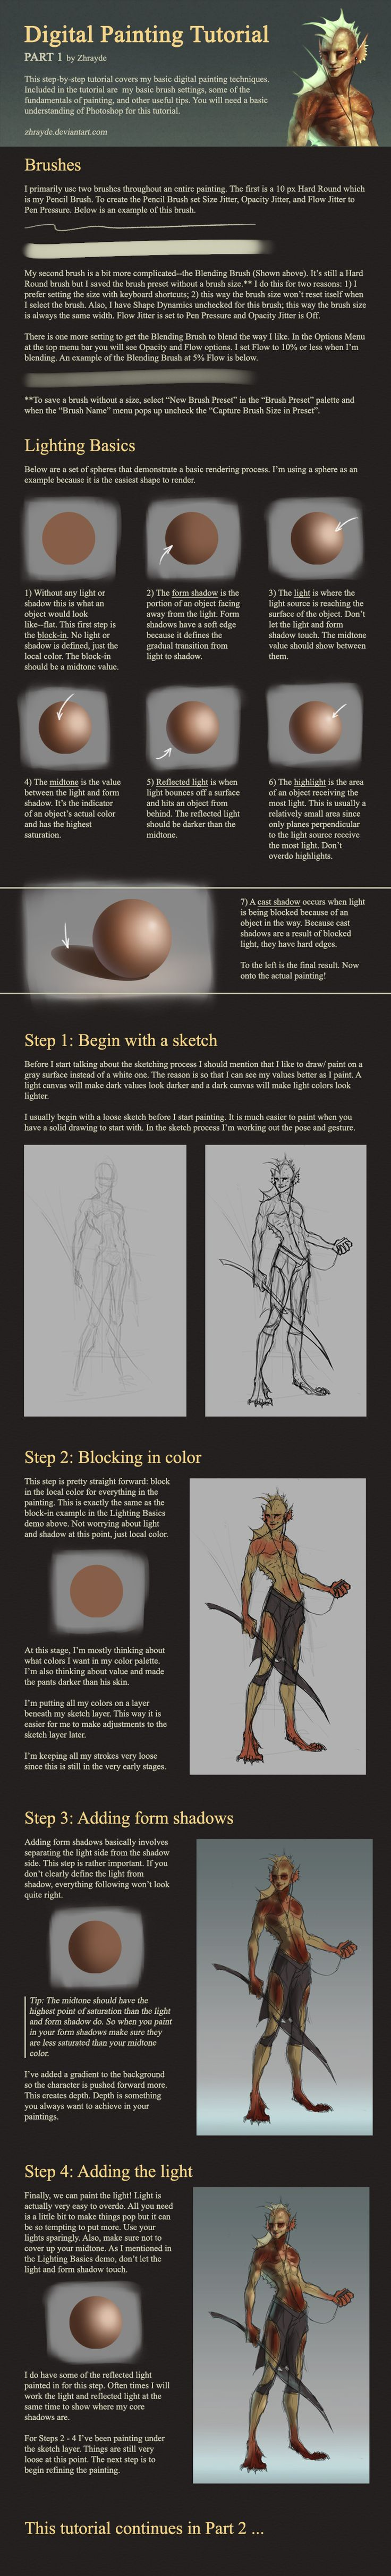 Digital Painting Tutorial - Part 1 by Zhrayde.deviantart.com on @deviantART